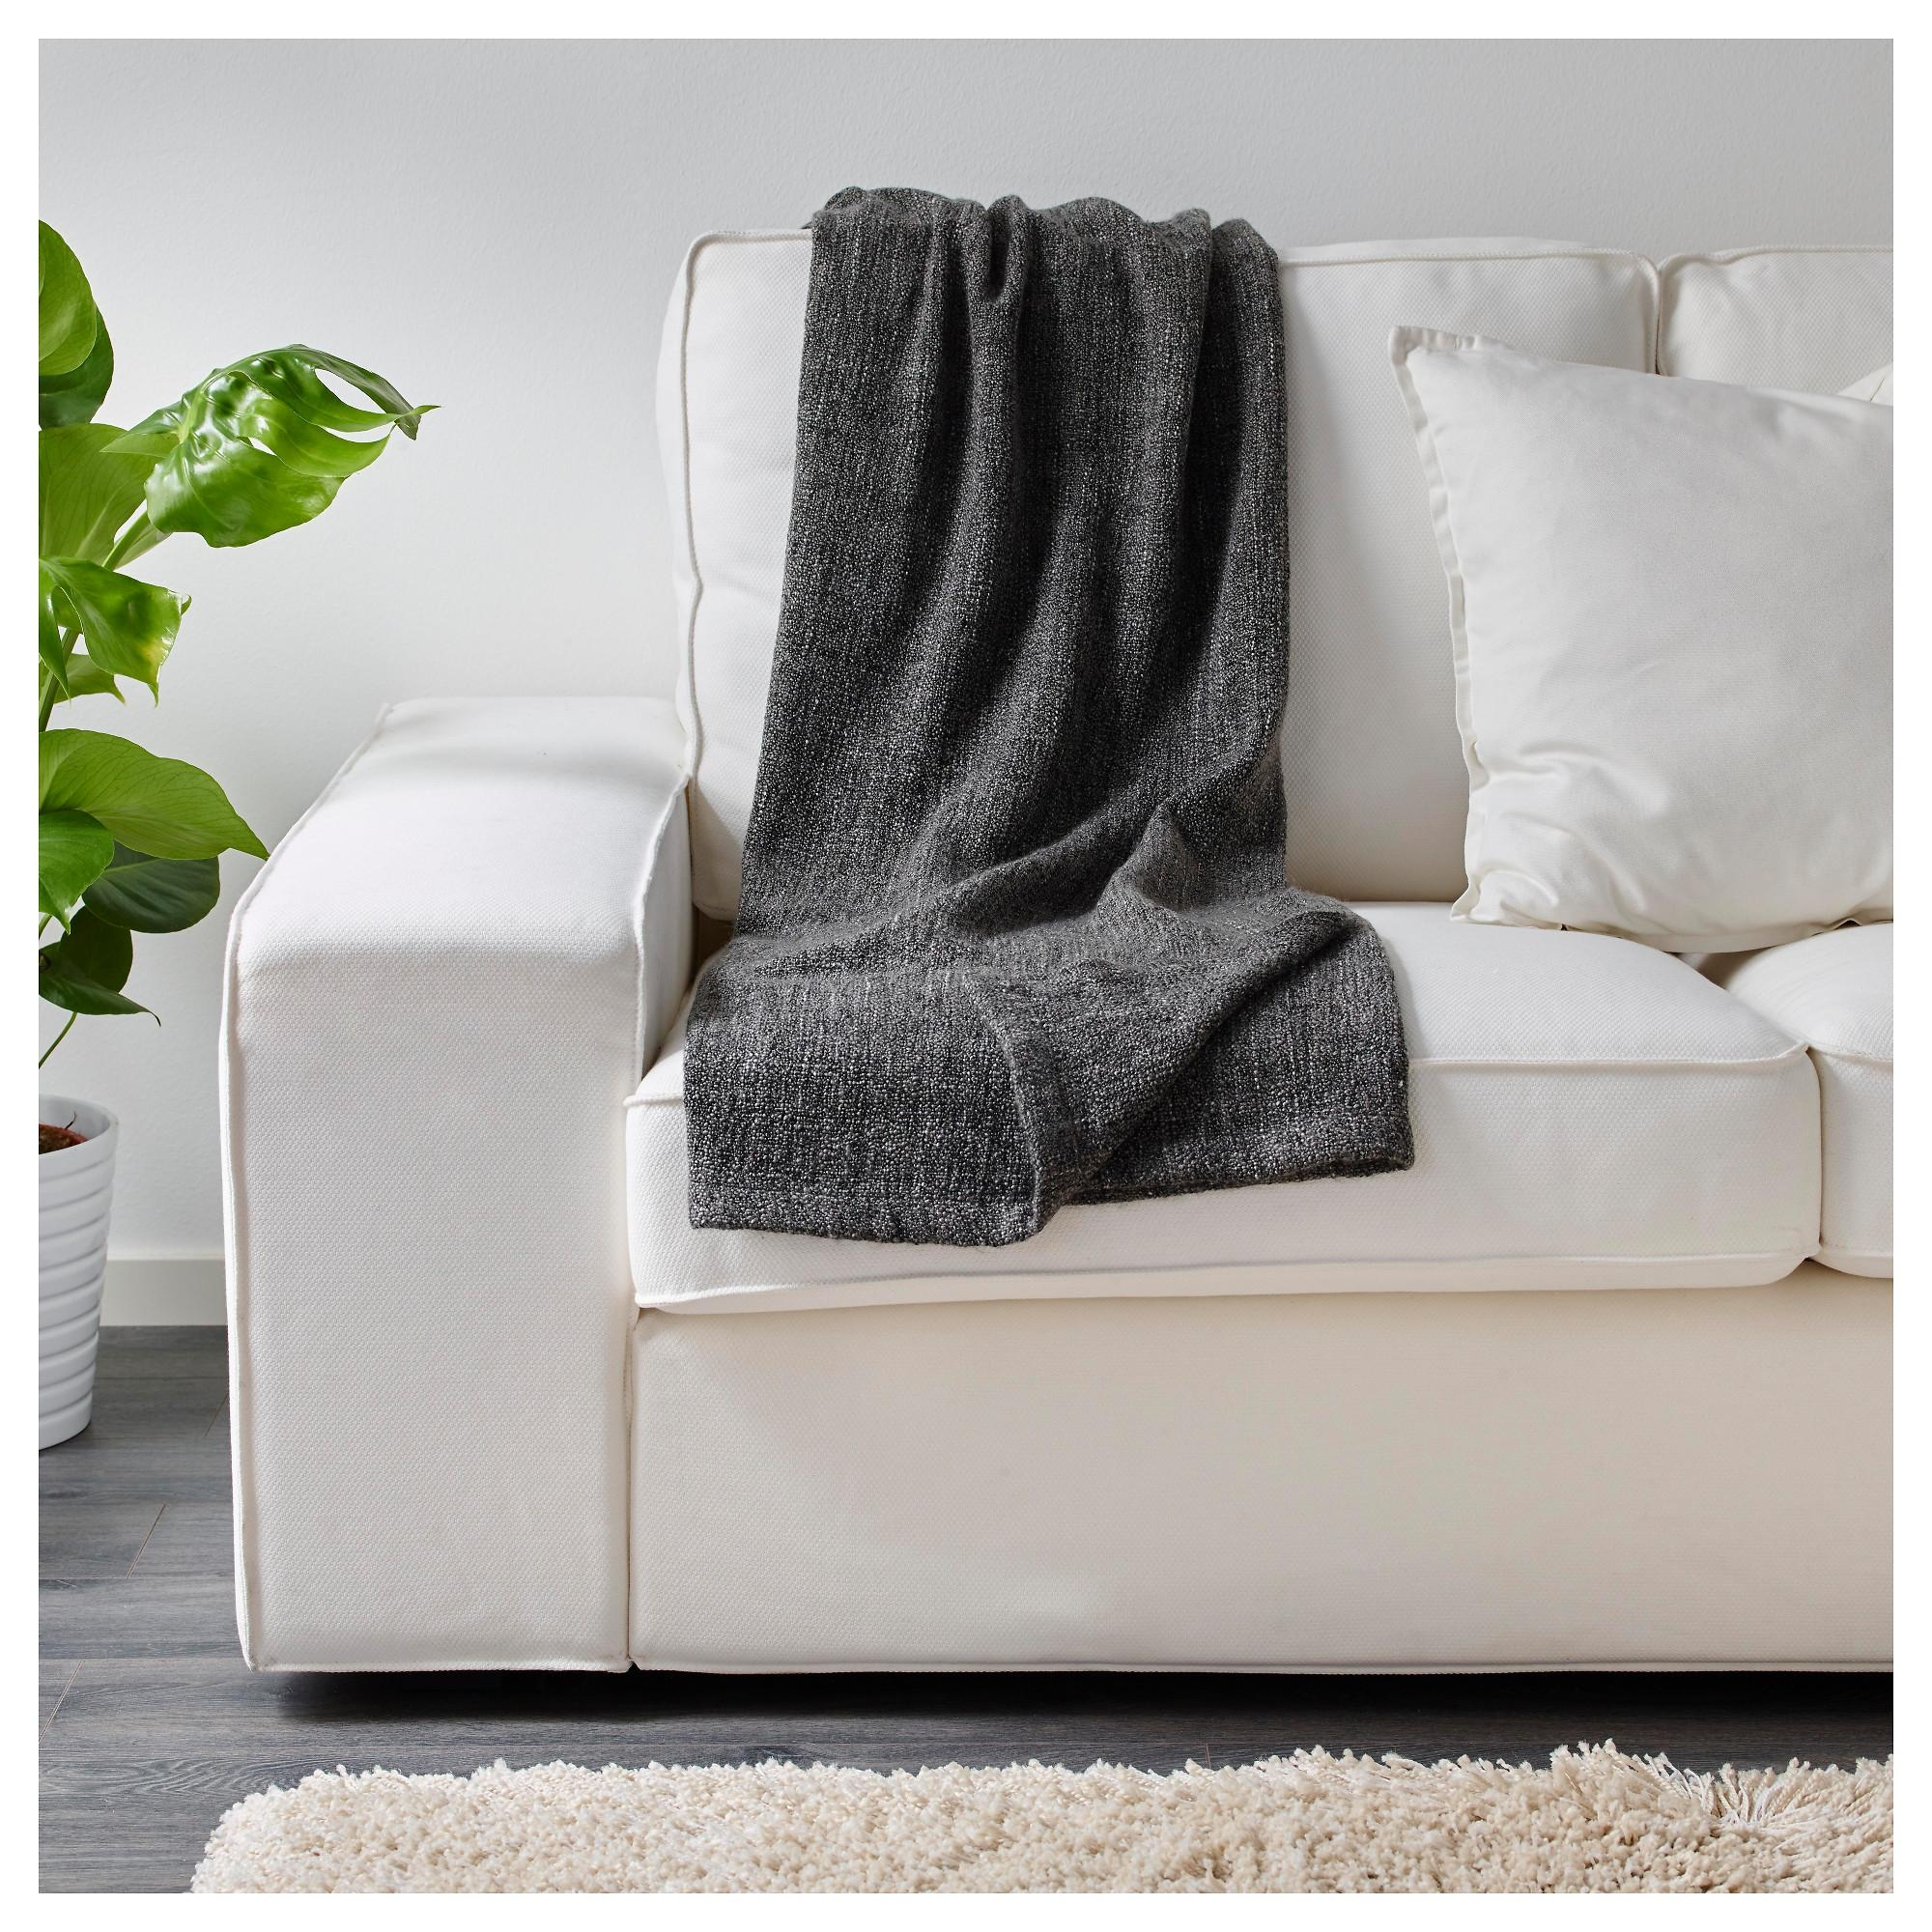 Throws & Blankets | Ikea Throughout Throws For Sofas And Chairs (Image 19 of 20)